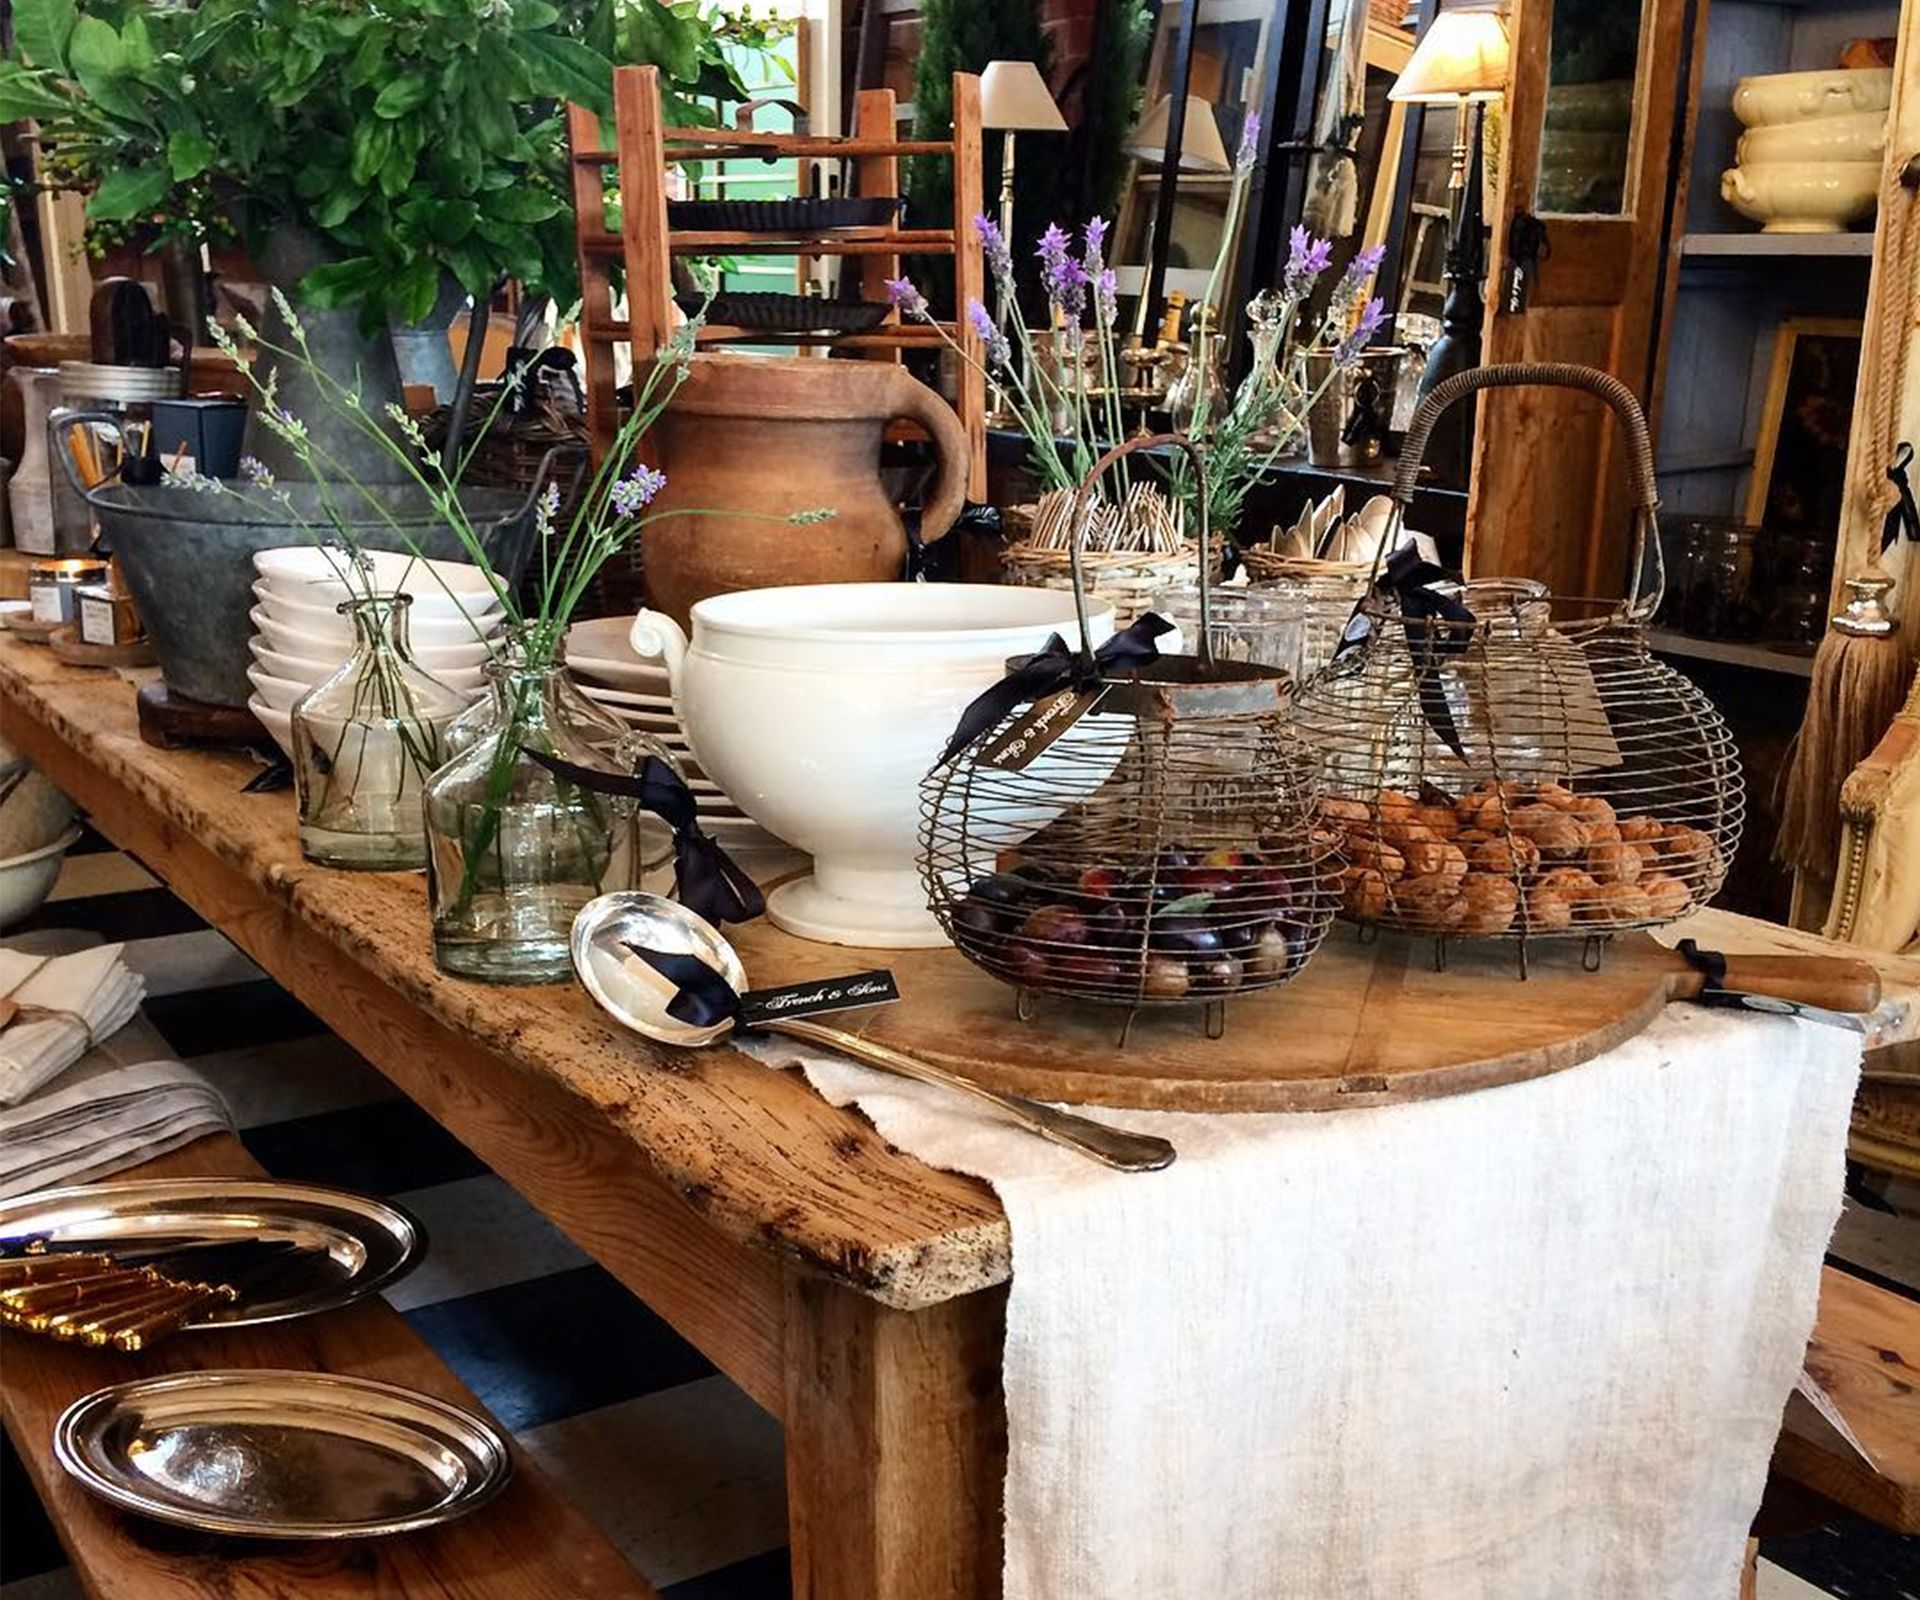 14 Of The Best Secondhand Homeware And Furniture Stores In New Zealand Furniture Decor Homewares Shop Classic Furniture Design